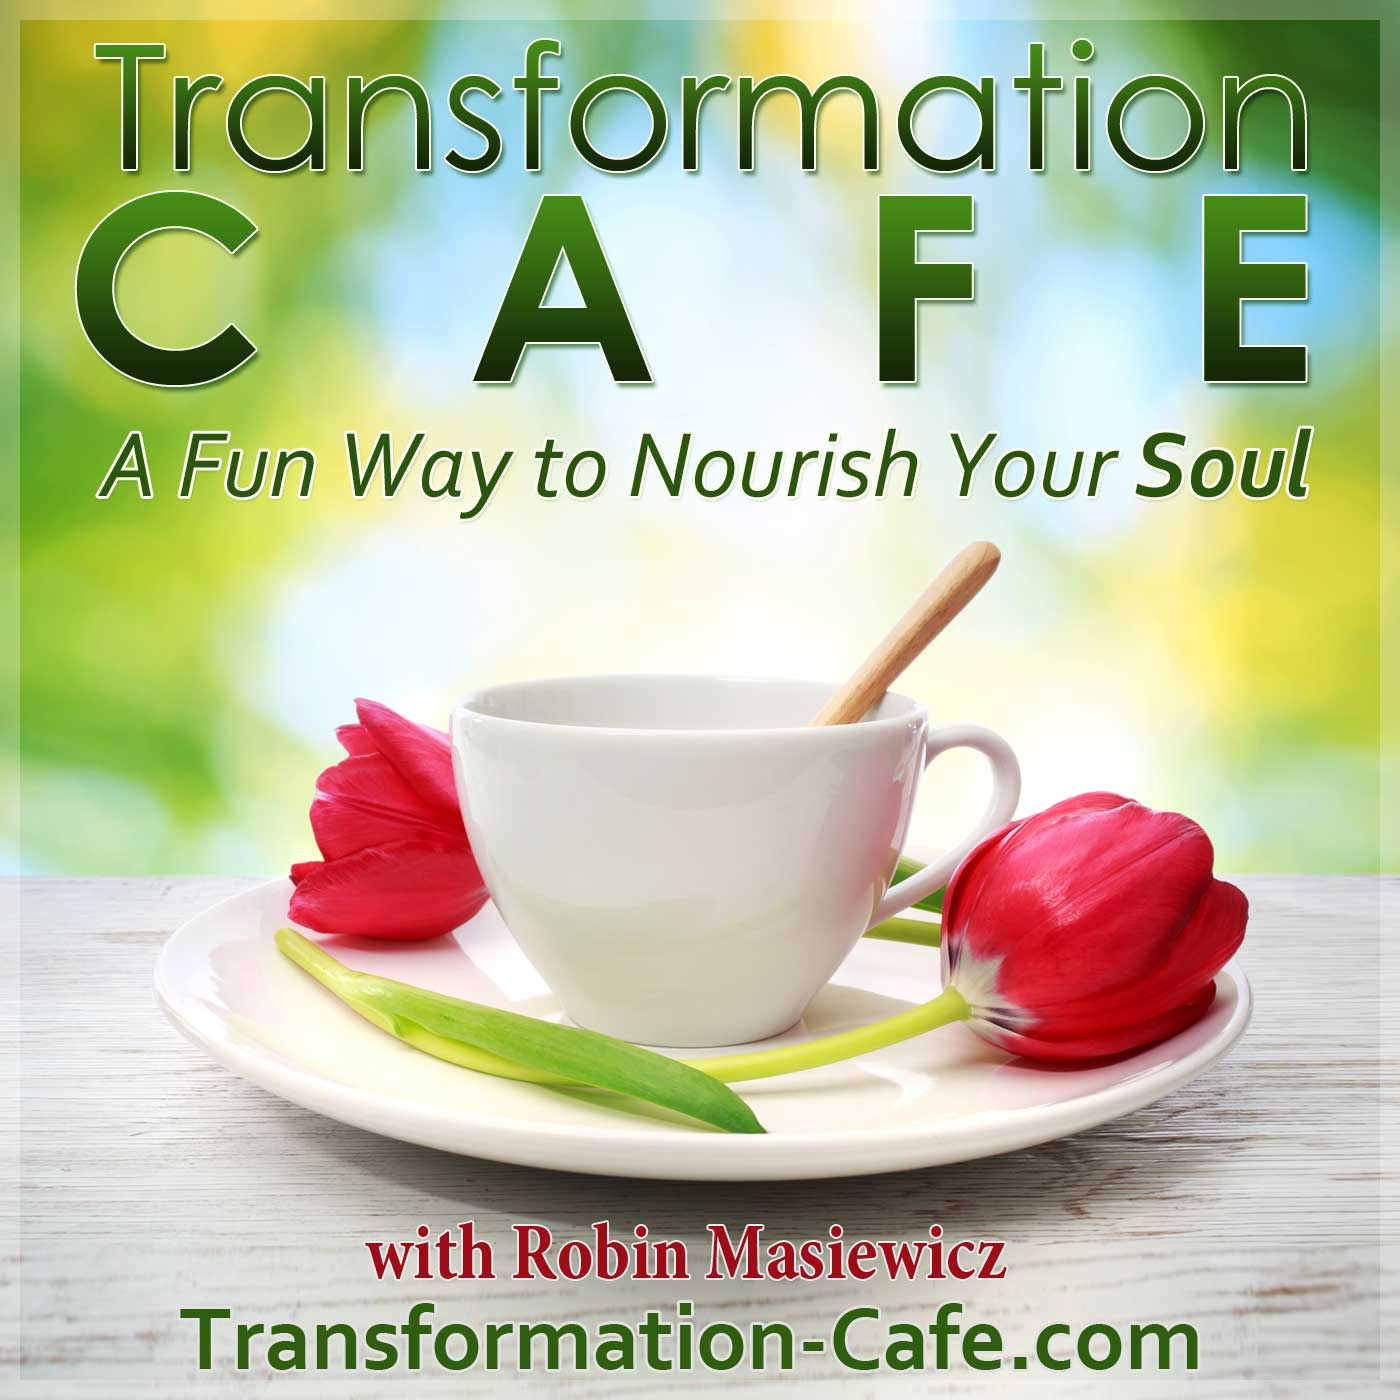 Transformation Cafe